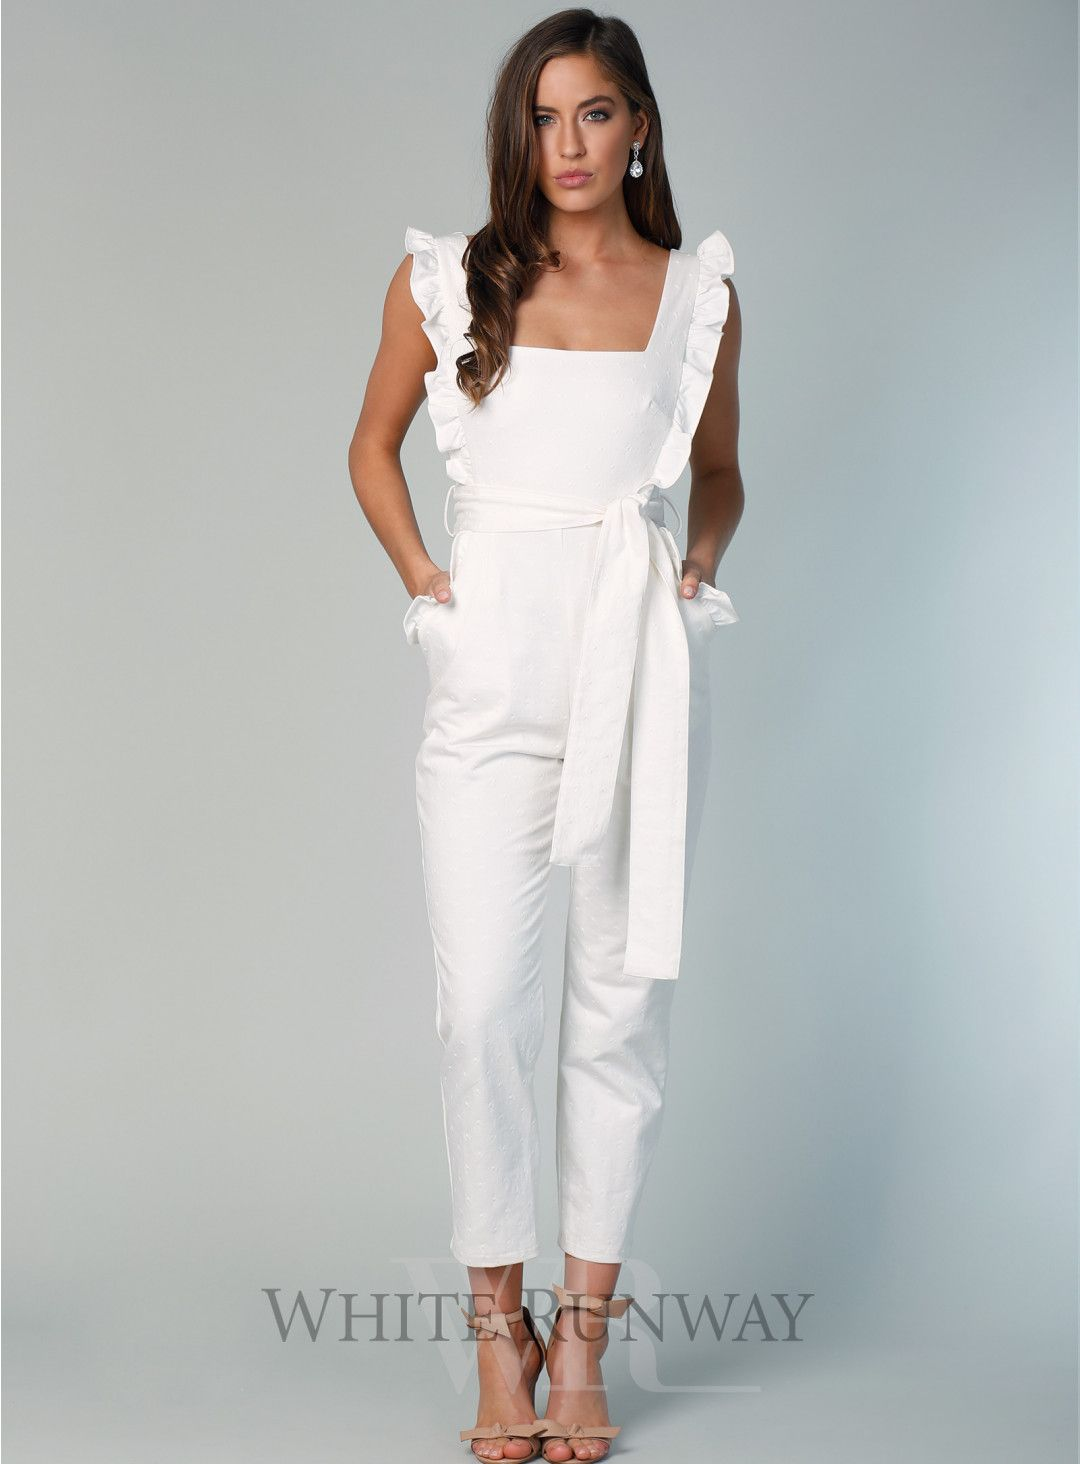 bf1e9e15ba1 Pre-Order Getaway Girl Jumpsuit. A chic jumpsuit by Pasduchas. Featuring a  square neckline and ruffle details on the arms and pockets.